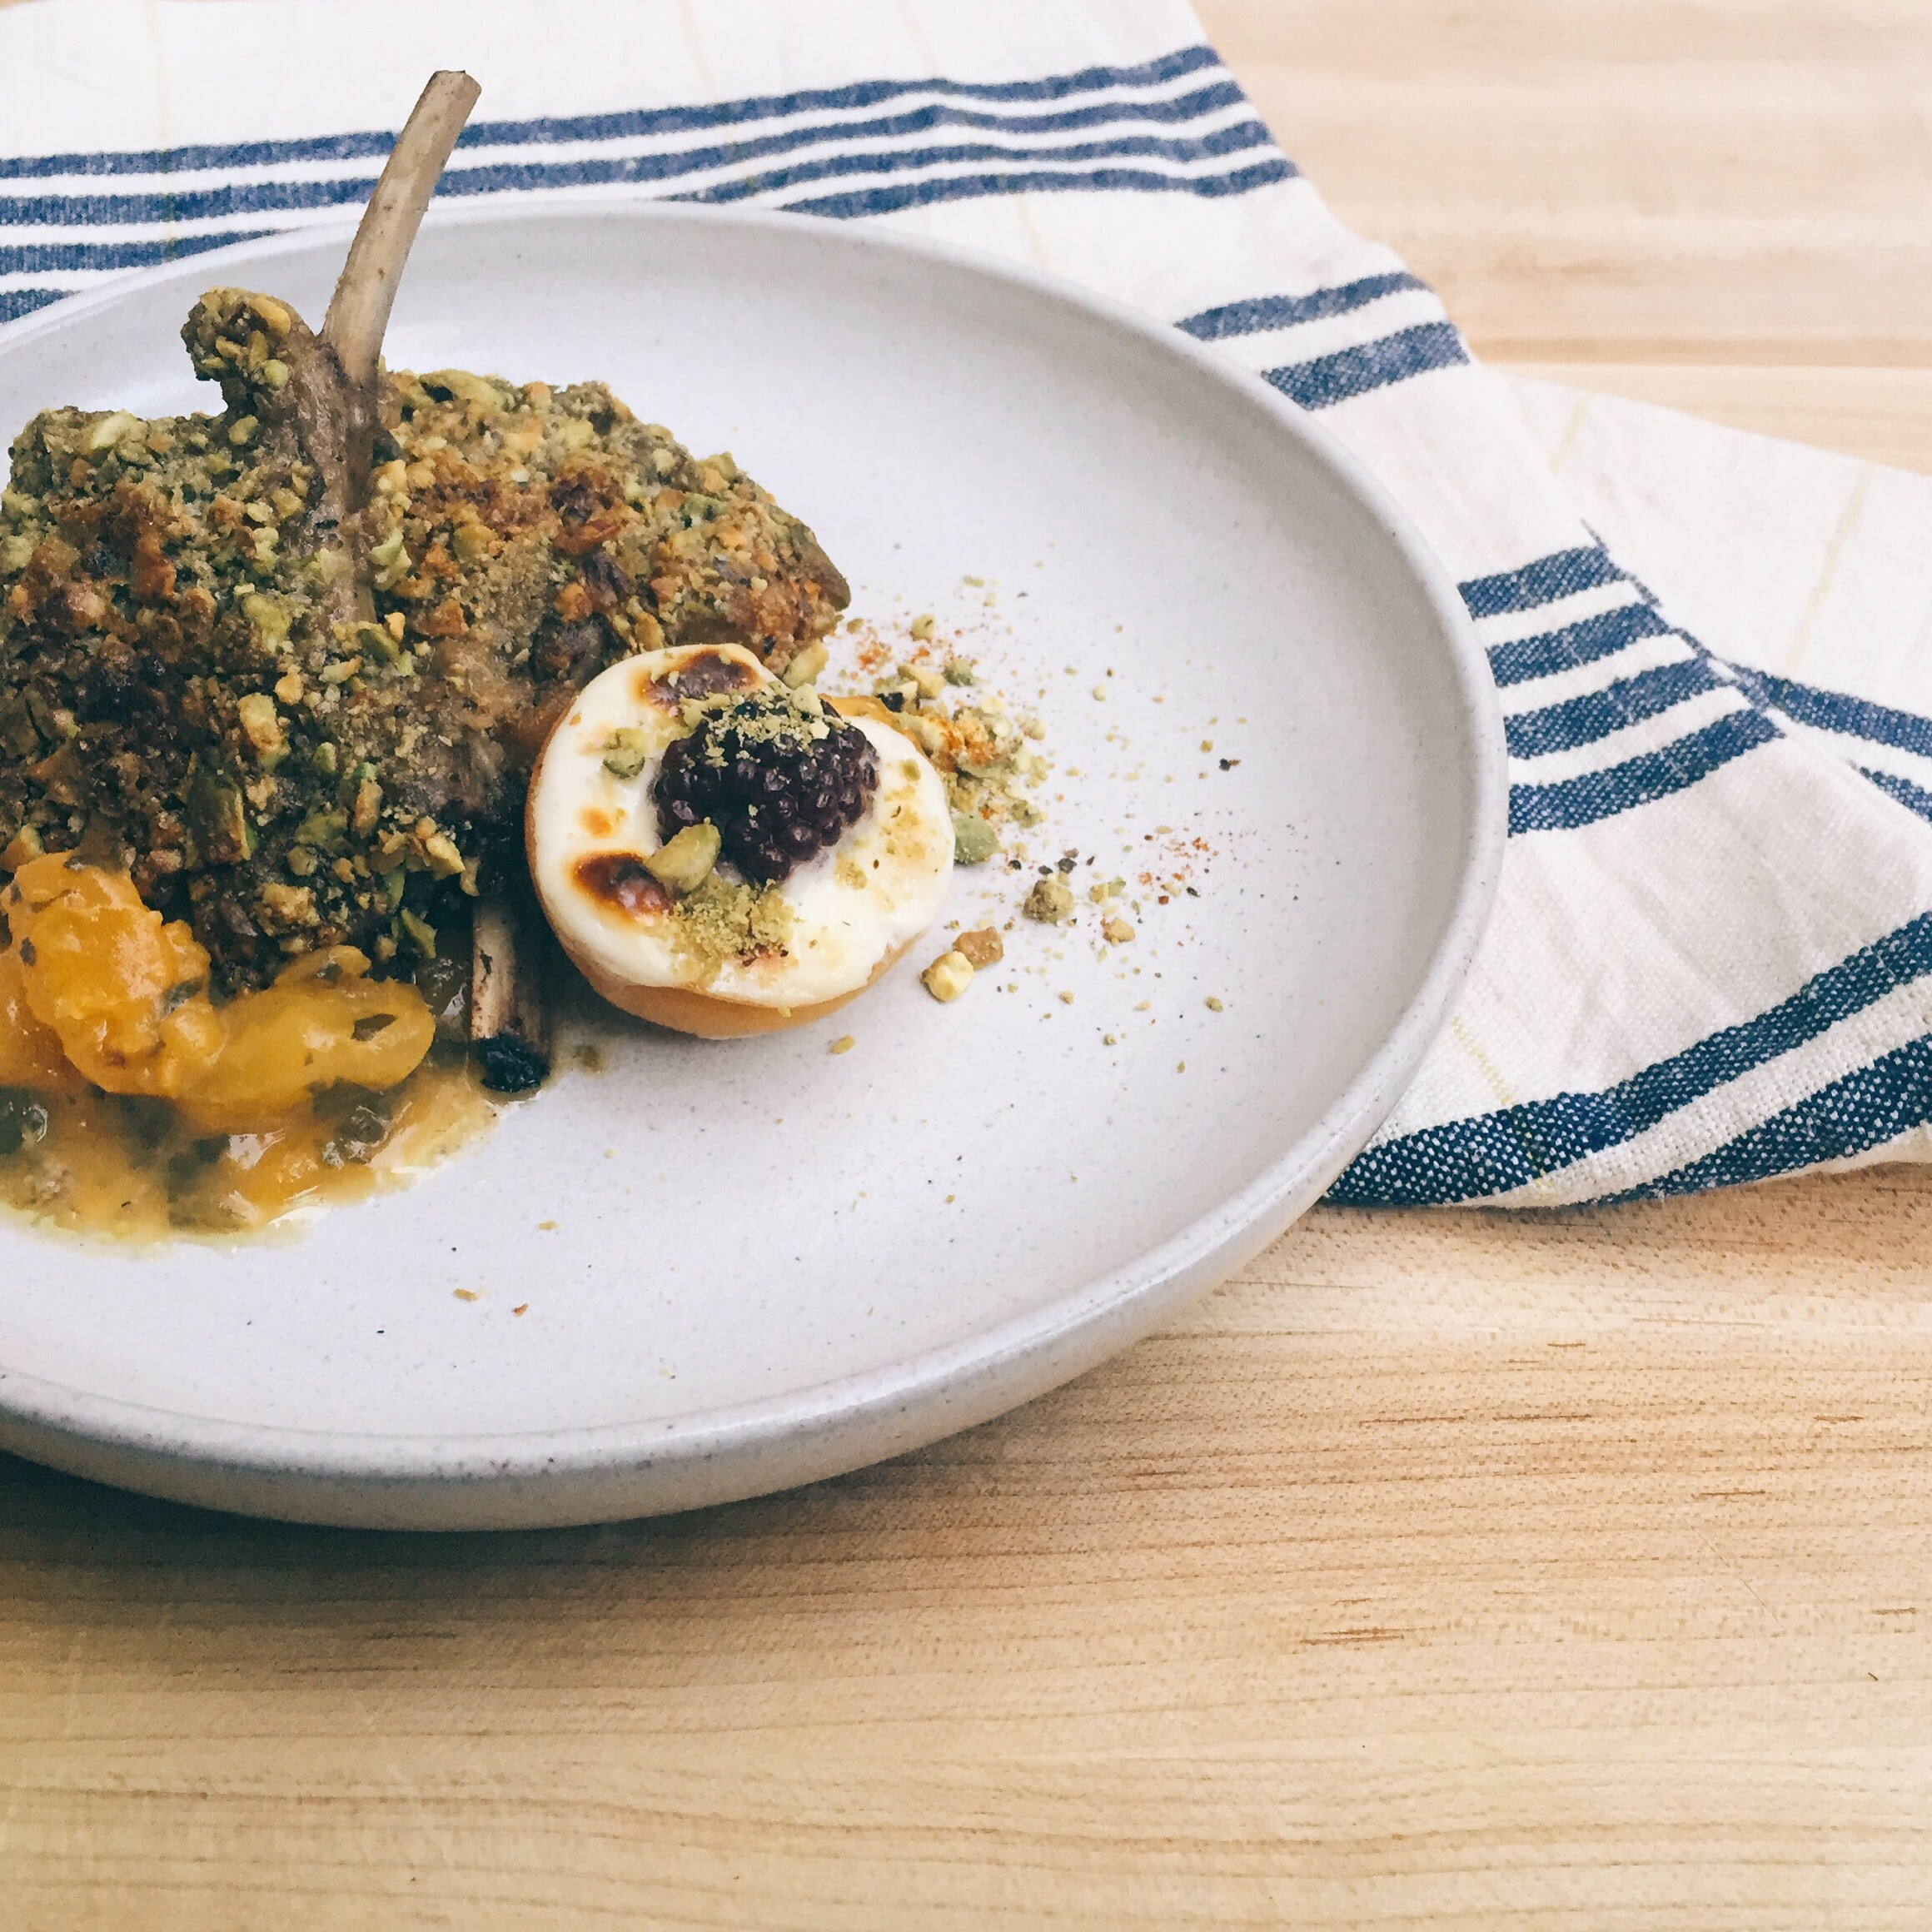 { Pistachio crusted lamb chop served with apricots two ways }